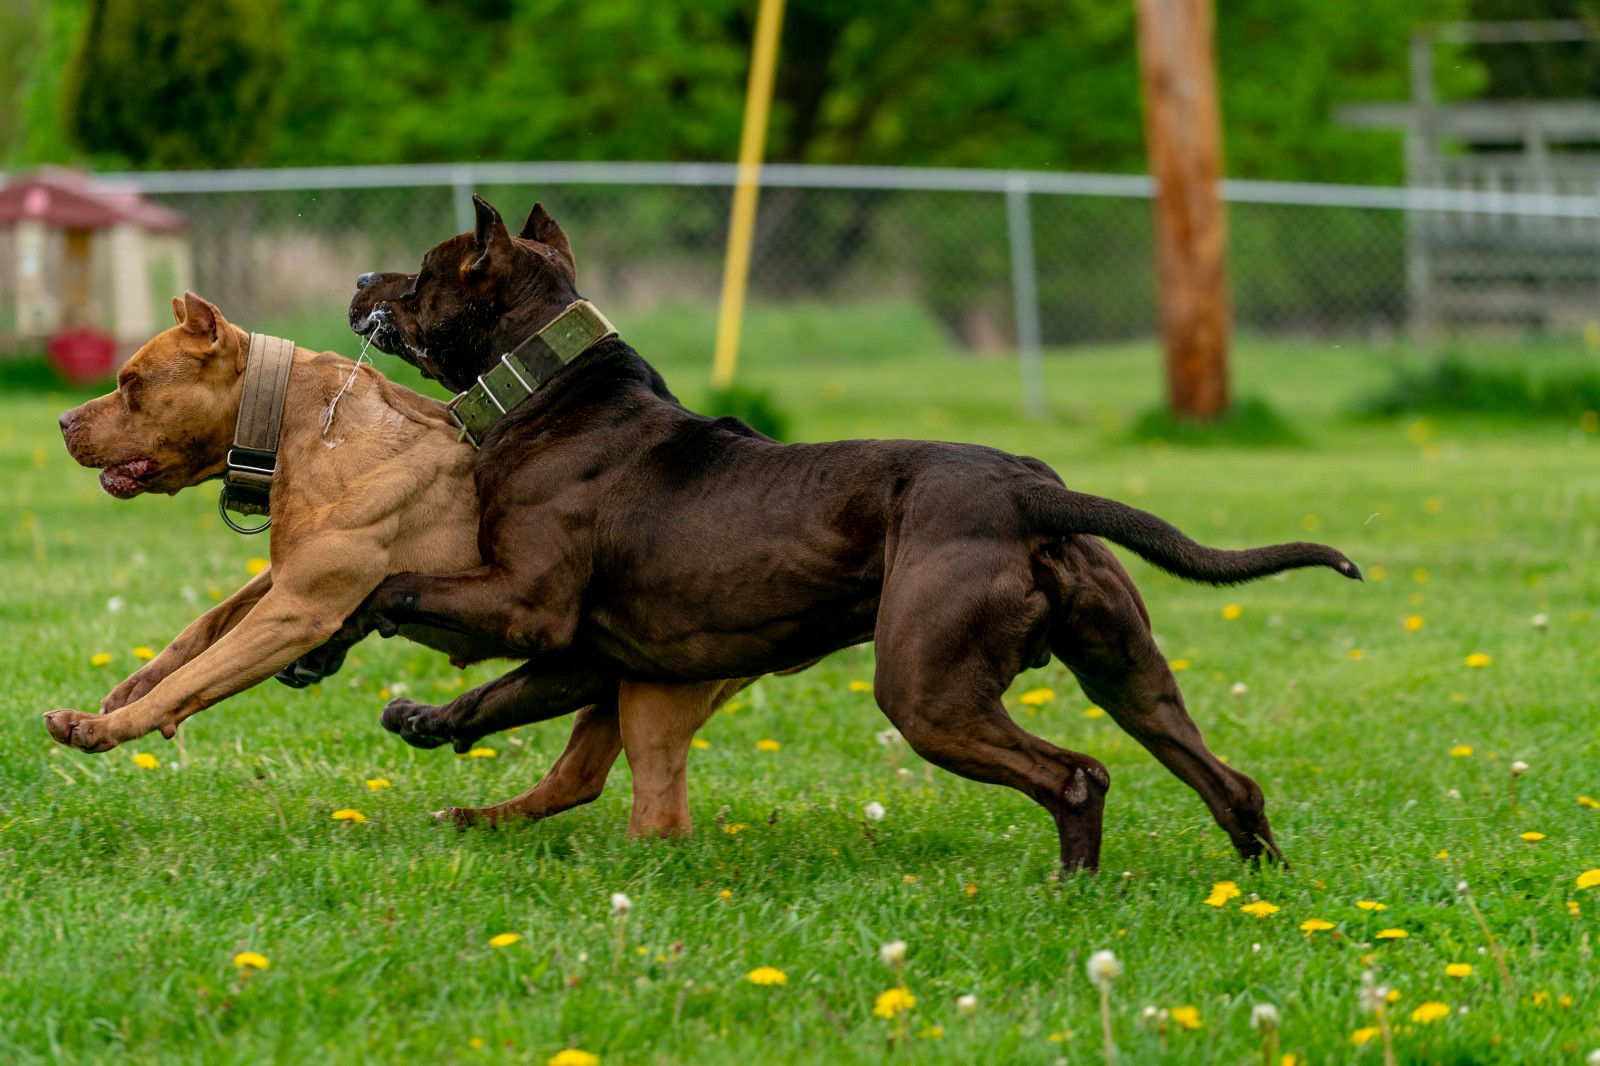 Unleashed Kennelz Hitman, a big black ripped pit bull collides with rush, a red female xl pit bull as muscles flex and saliva sprays in a yard with green grass and yellow dandelions.